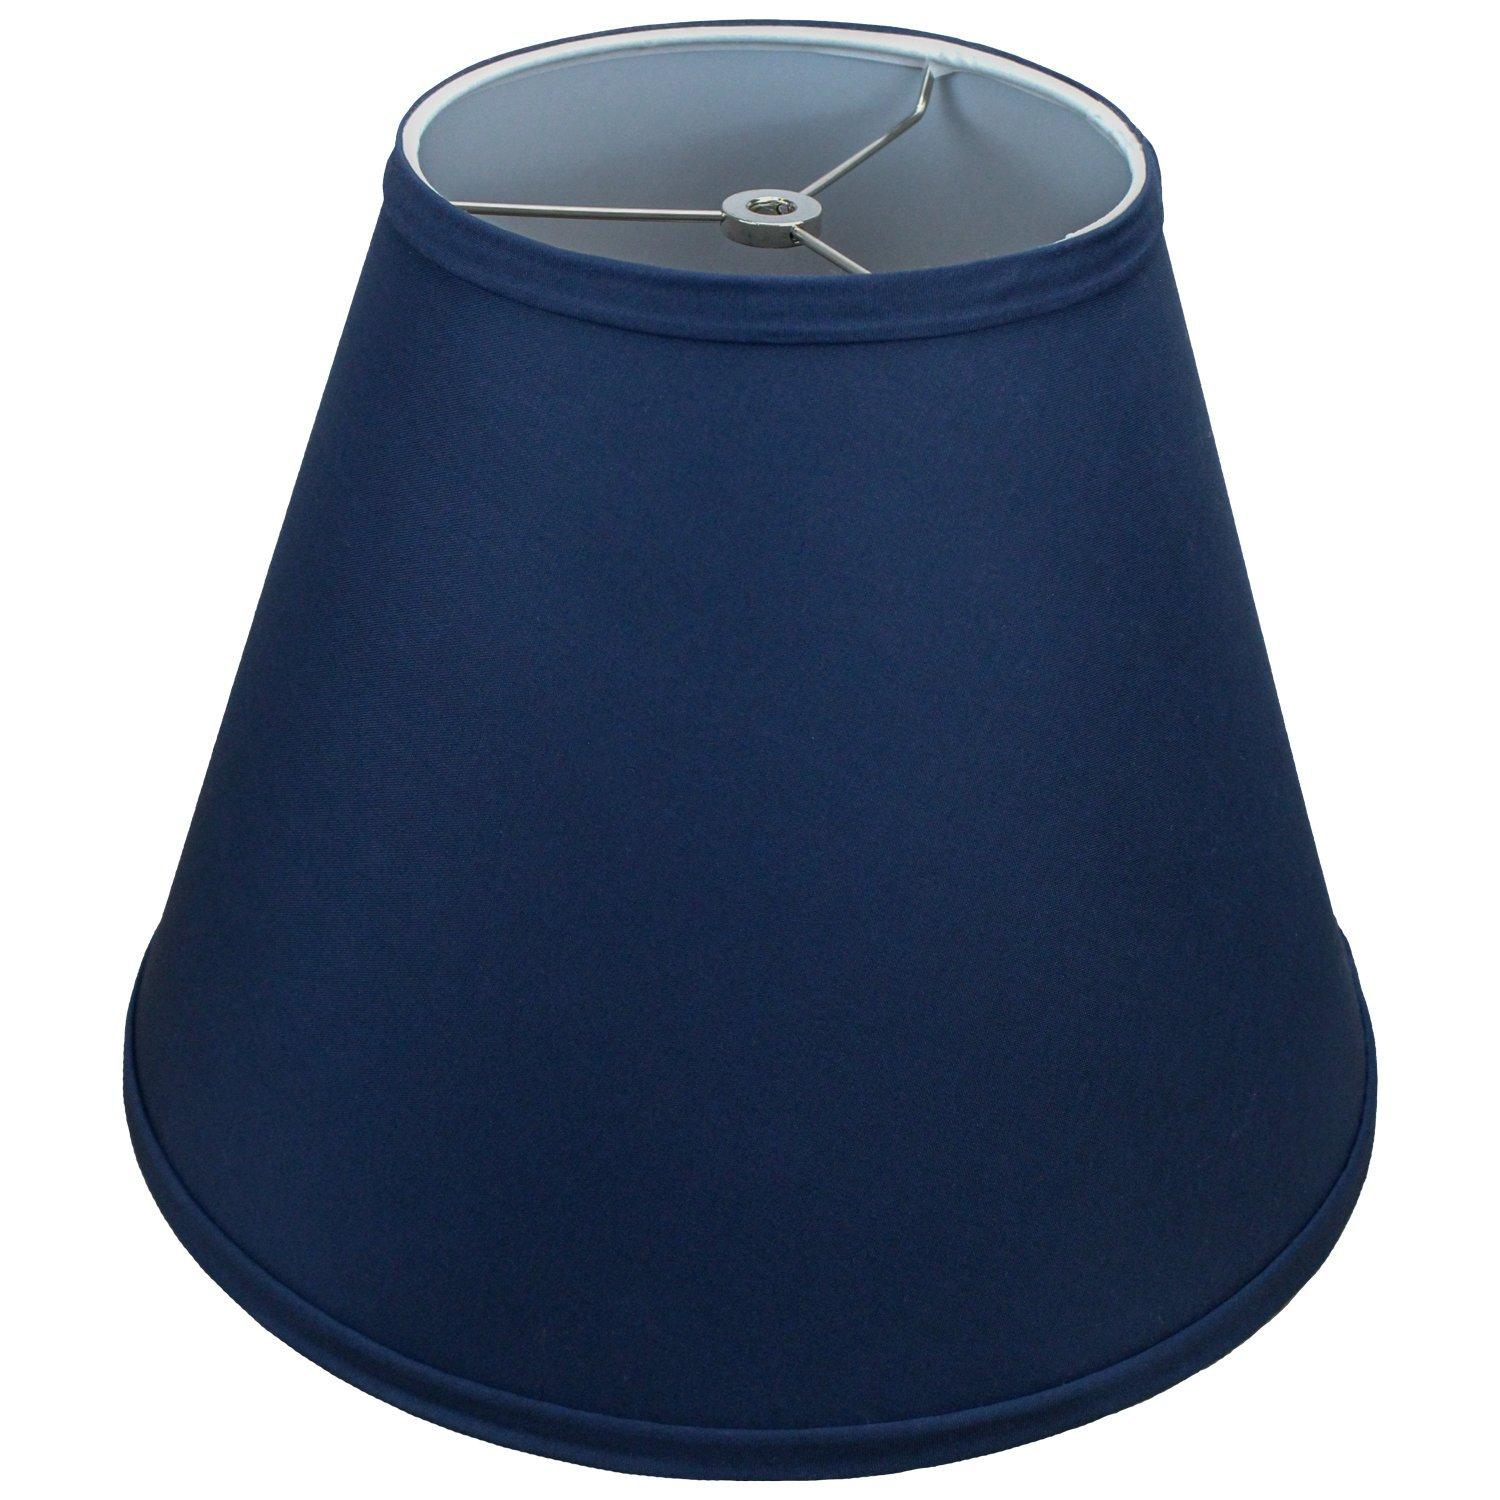 FenchelShades.com Lampshade 7'' Top Diameter x 14'' Bottom Diameter x 11'' Slant Height with Washer (Spider) Attachment for Lamps with a Harp (Navy Blue)